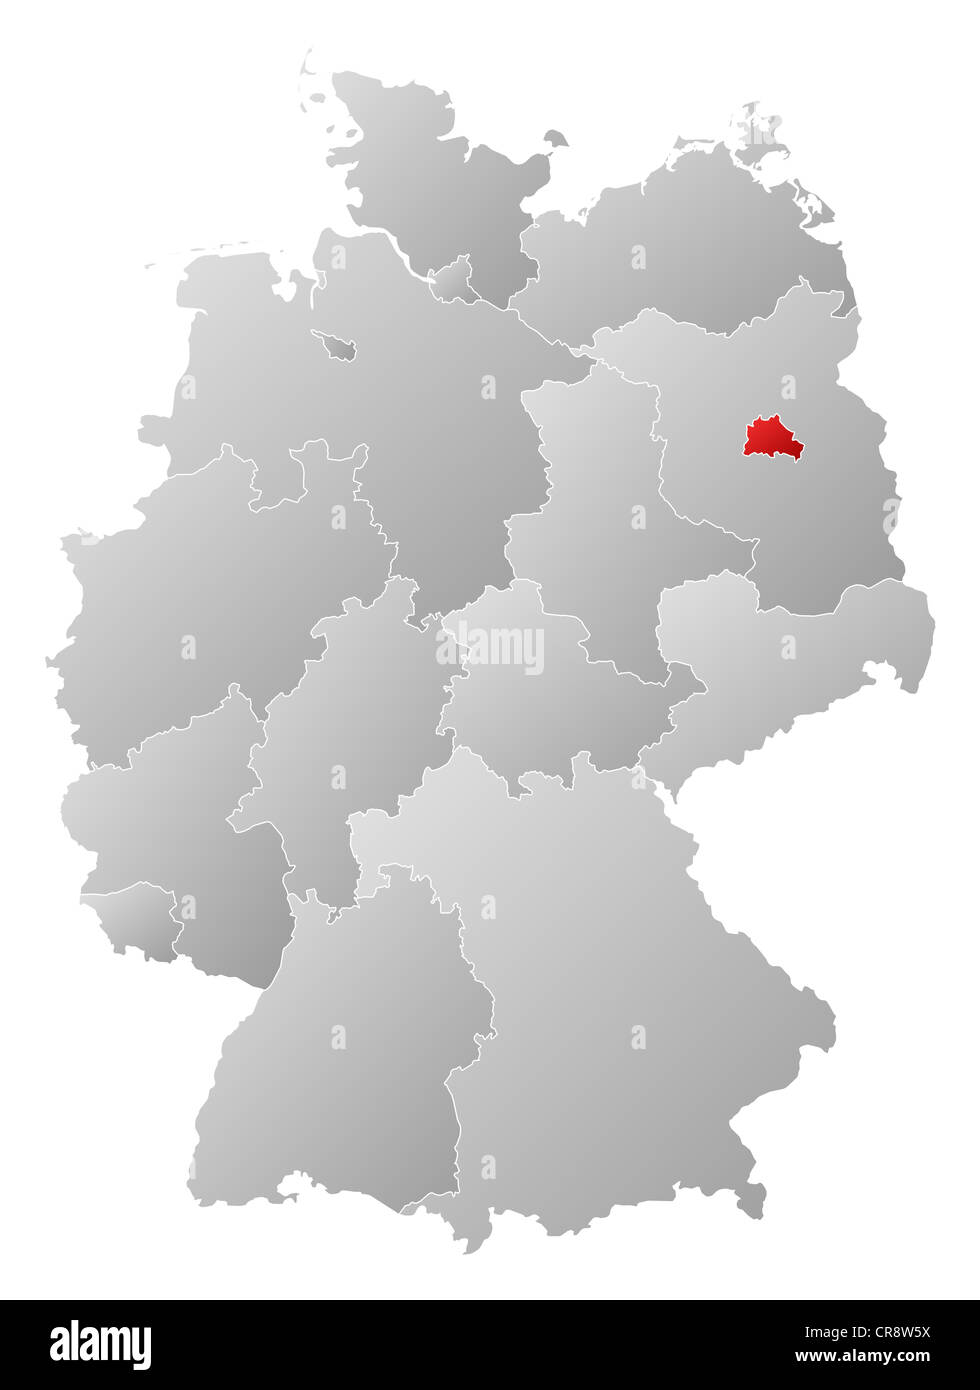 Germany map red outline symbol stock photos germany map red political map of germany with the several states where berlin is highlighted stock image gumiabroncs Choice Image